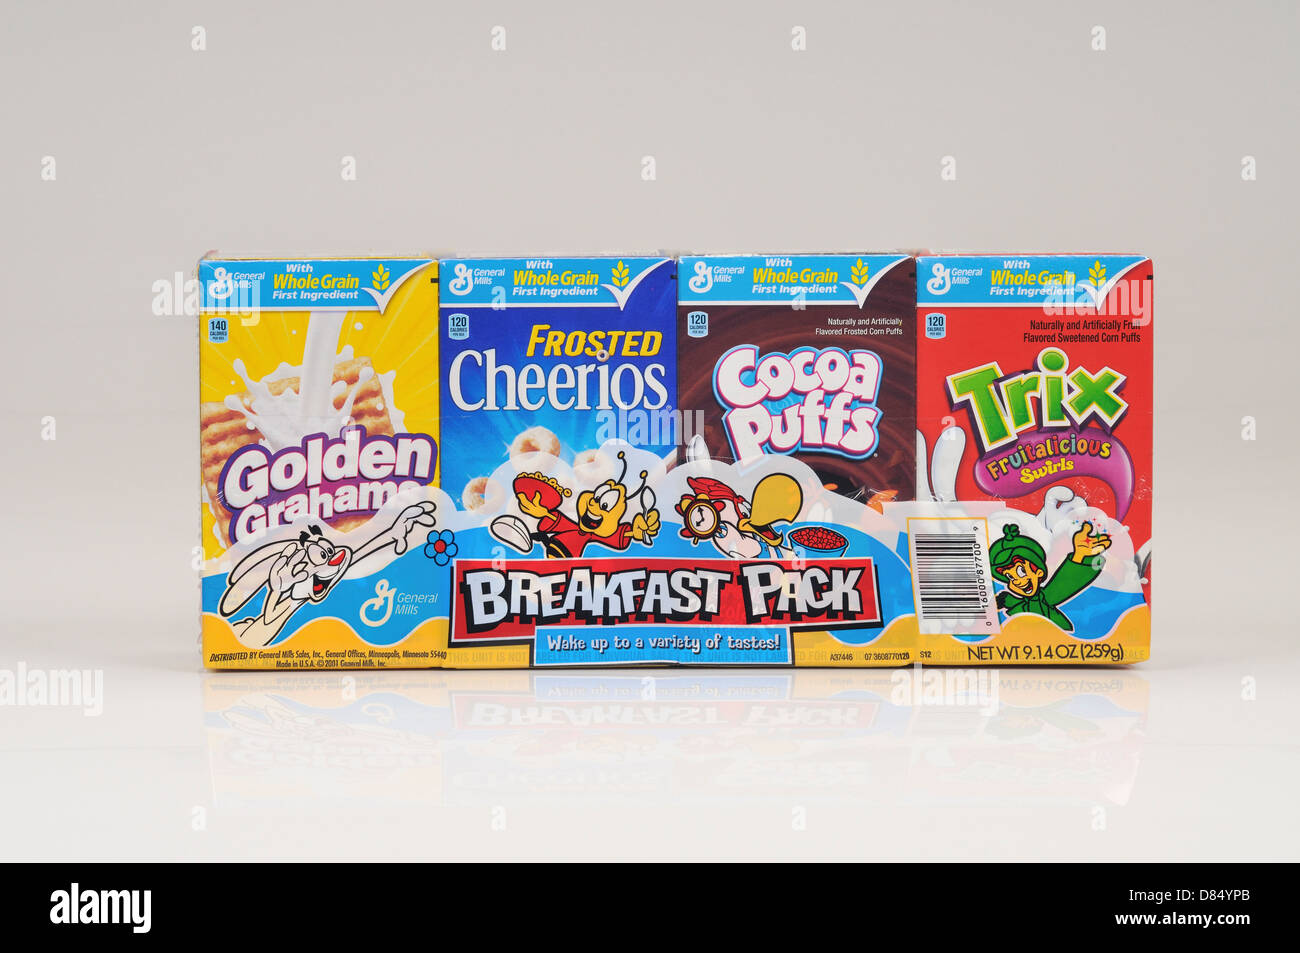 General Mills cereal breakfast pack on white background cutout. USA - Stock Image